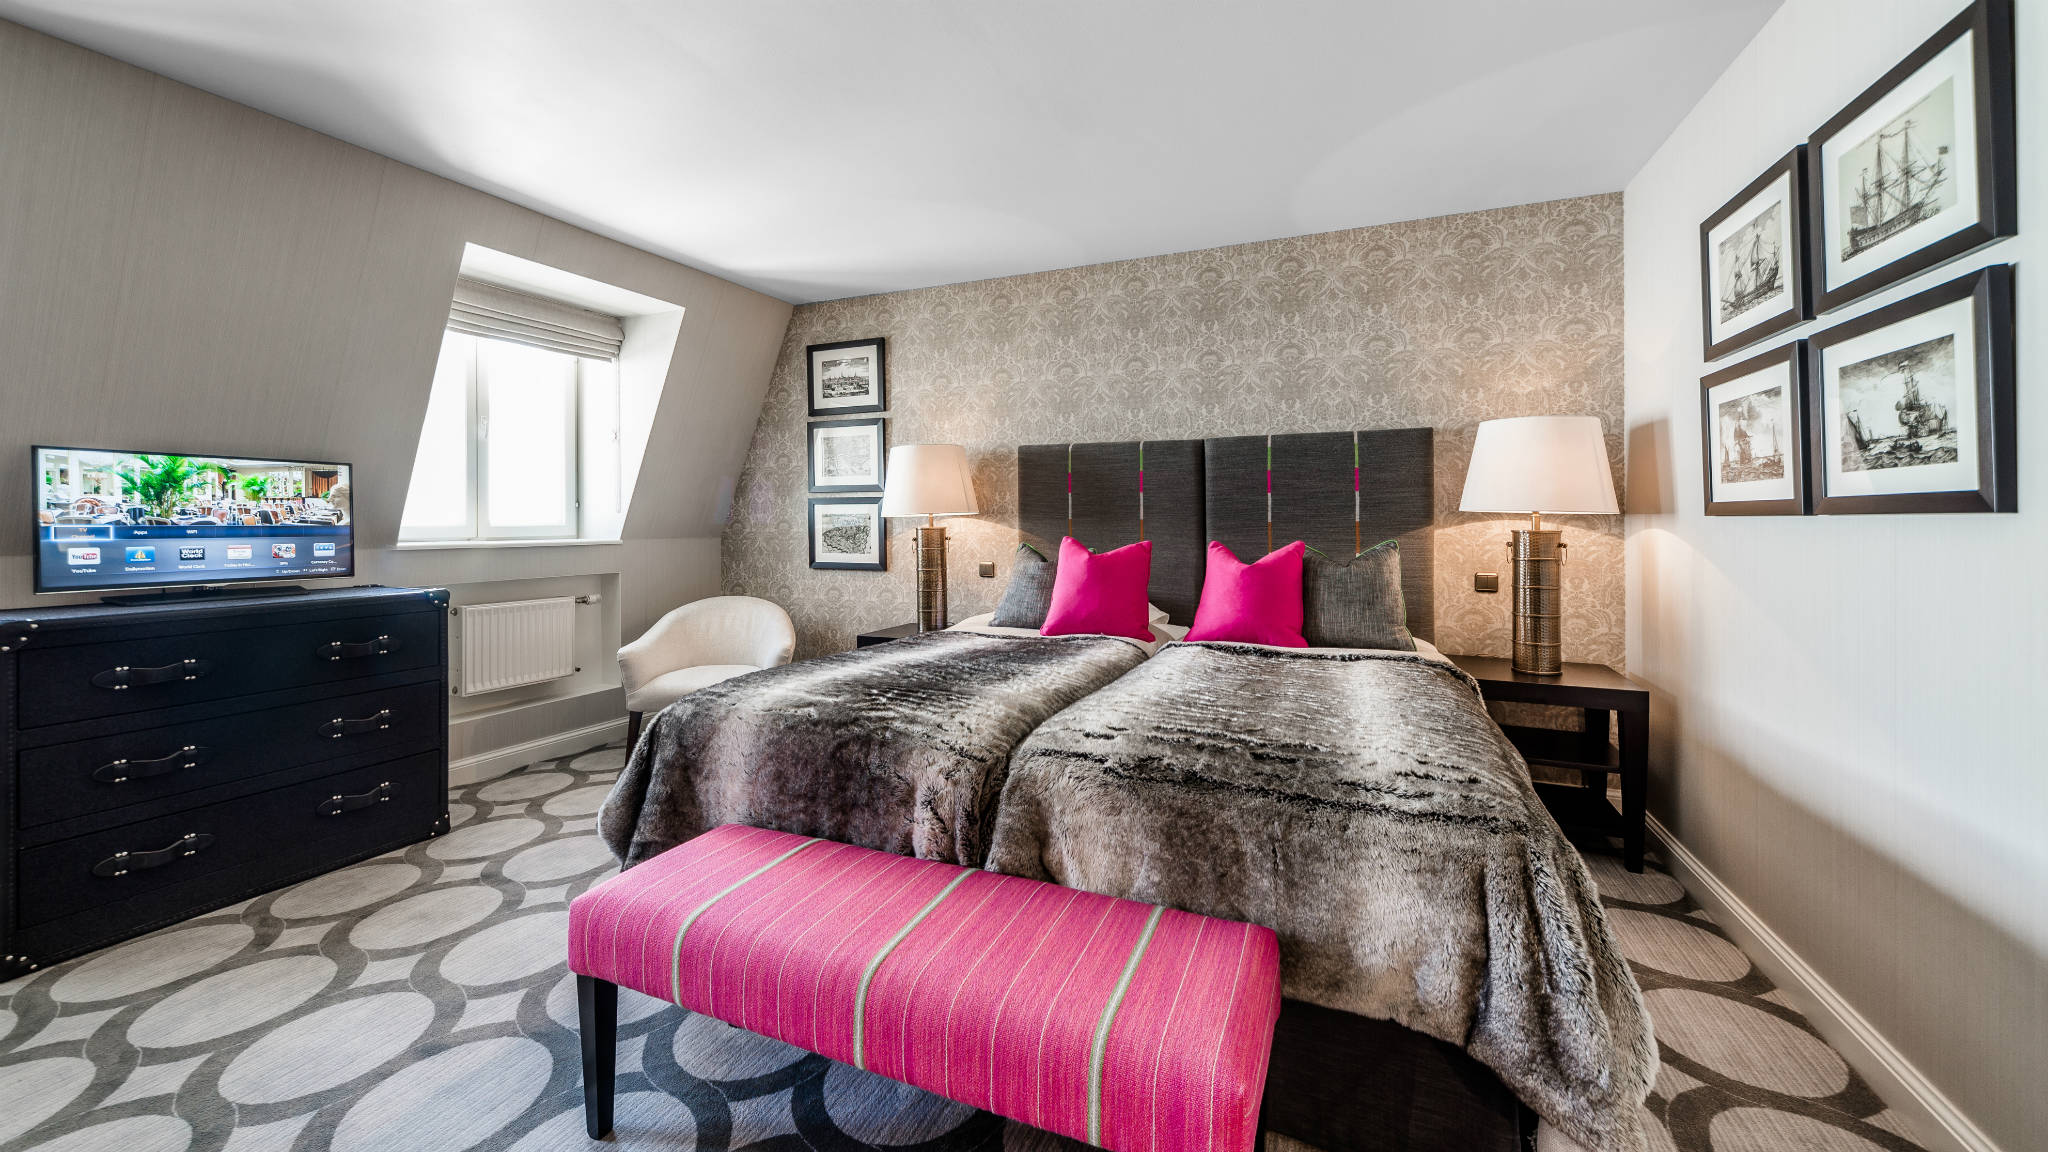 Luxury Hotels Riga Grand Palace Hotel 5 Star Exclusive Boutique